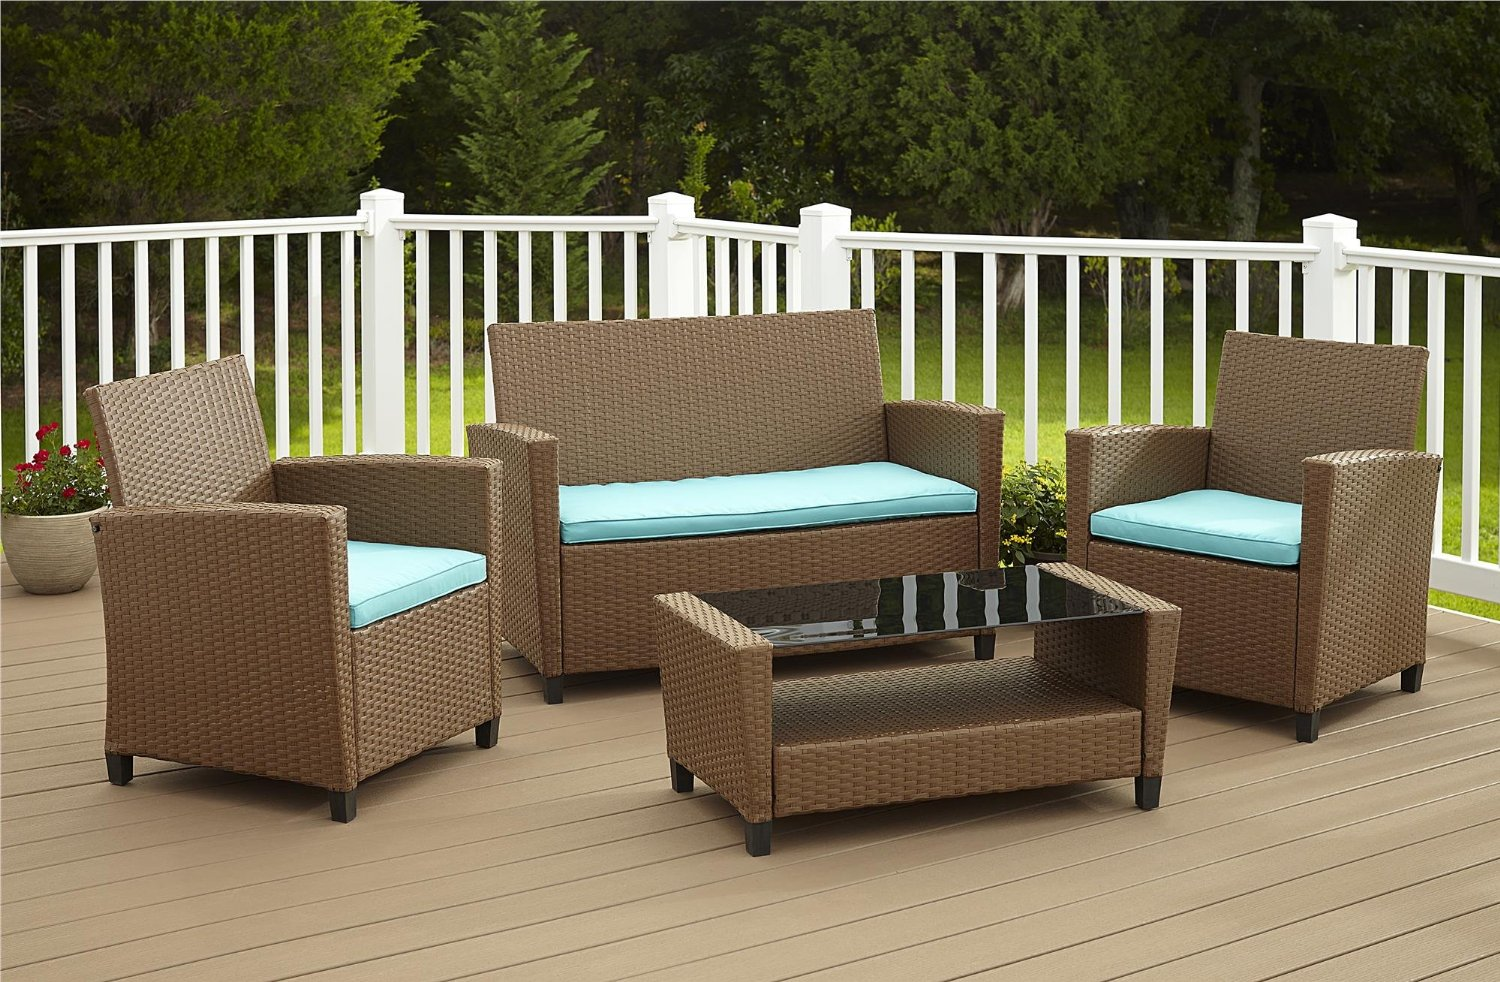 Best Wicker Patio Furniture Sets Under 1000 Resin Outsidemodern